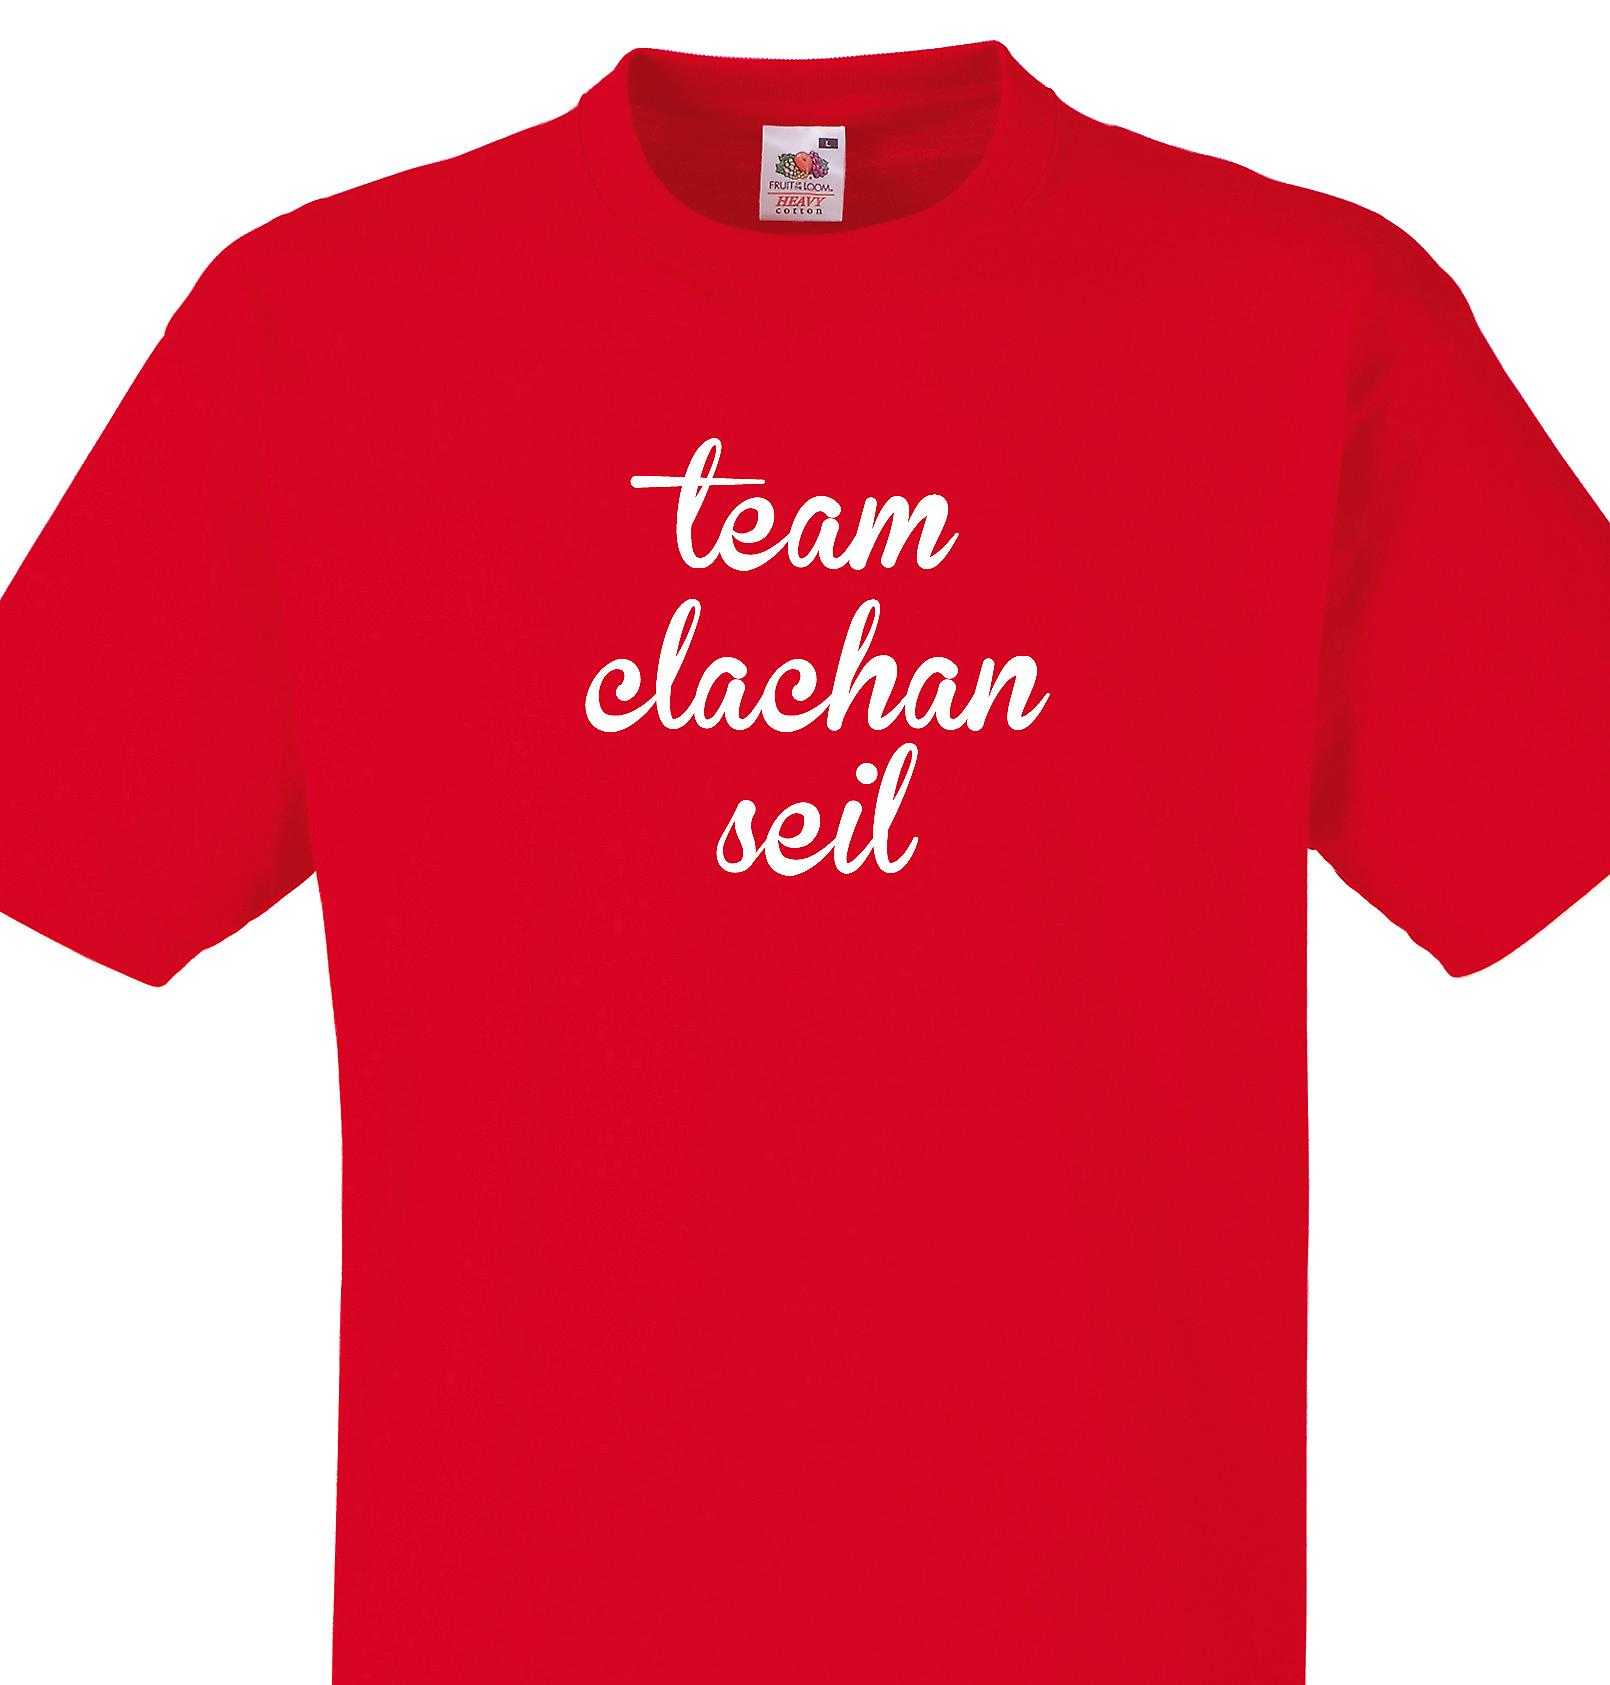 Team Clachan seil Red T shirt